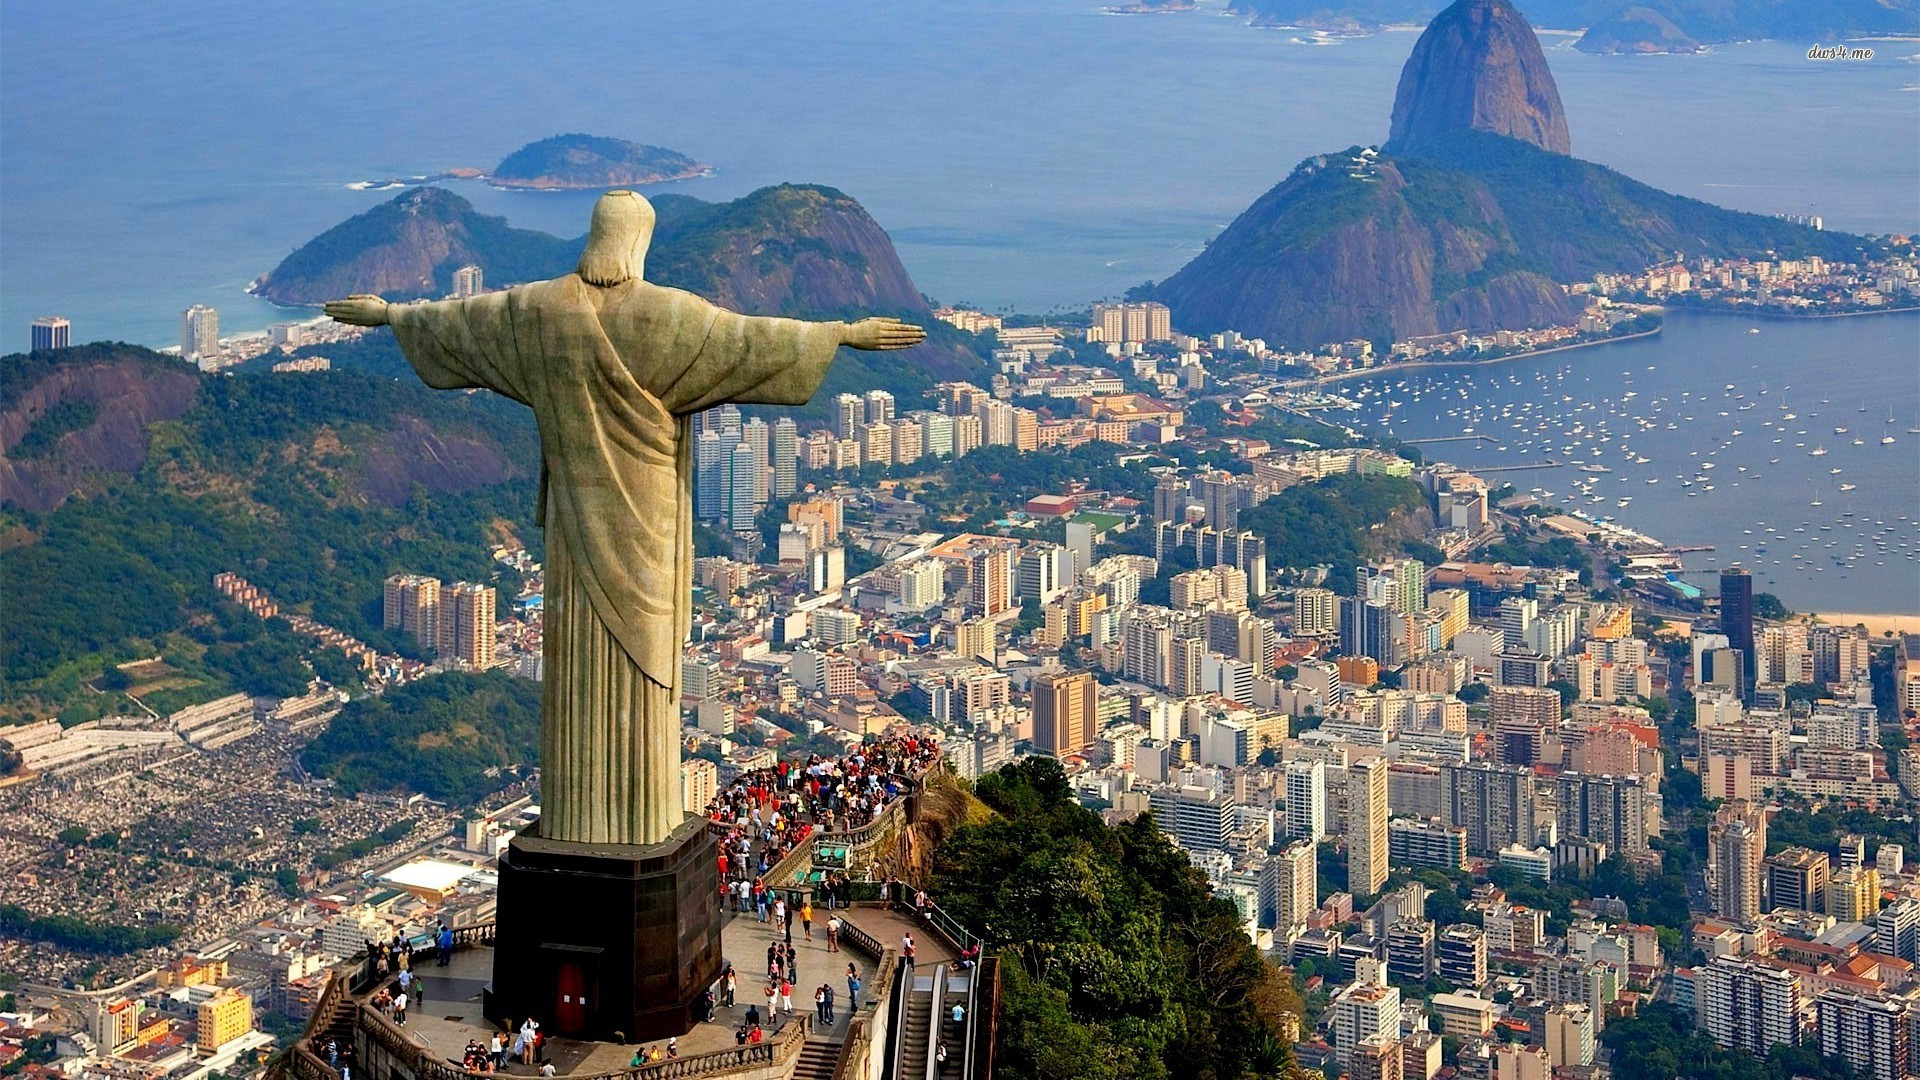 Statue of Christ the Redeemer looking down at Rio de Janeiro